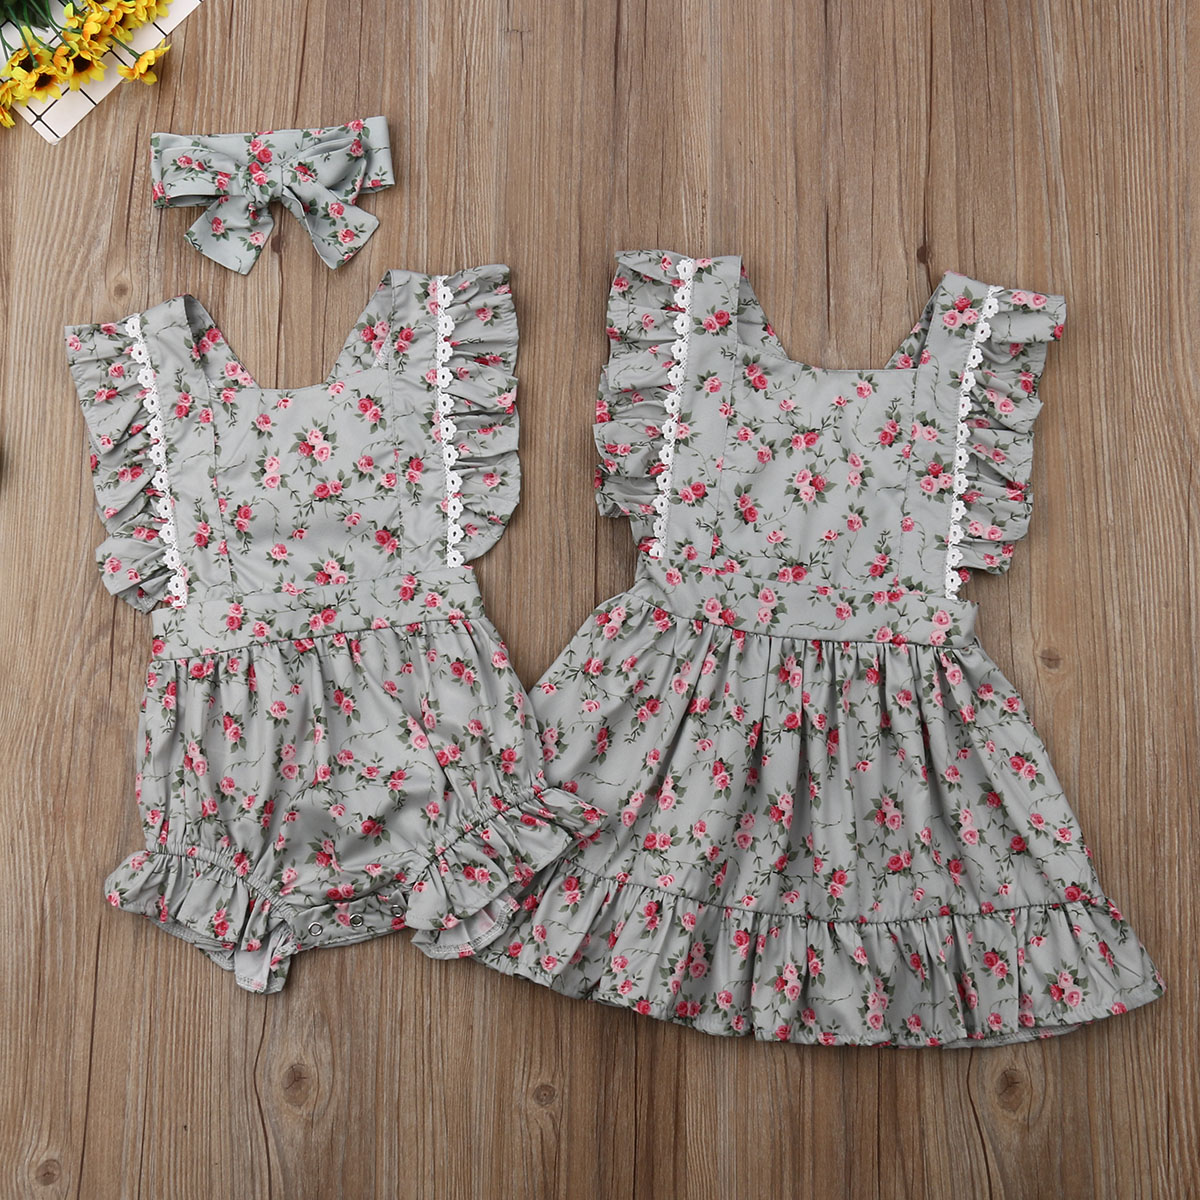 Vintage Floral Pinafore Dress